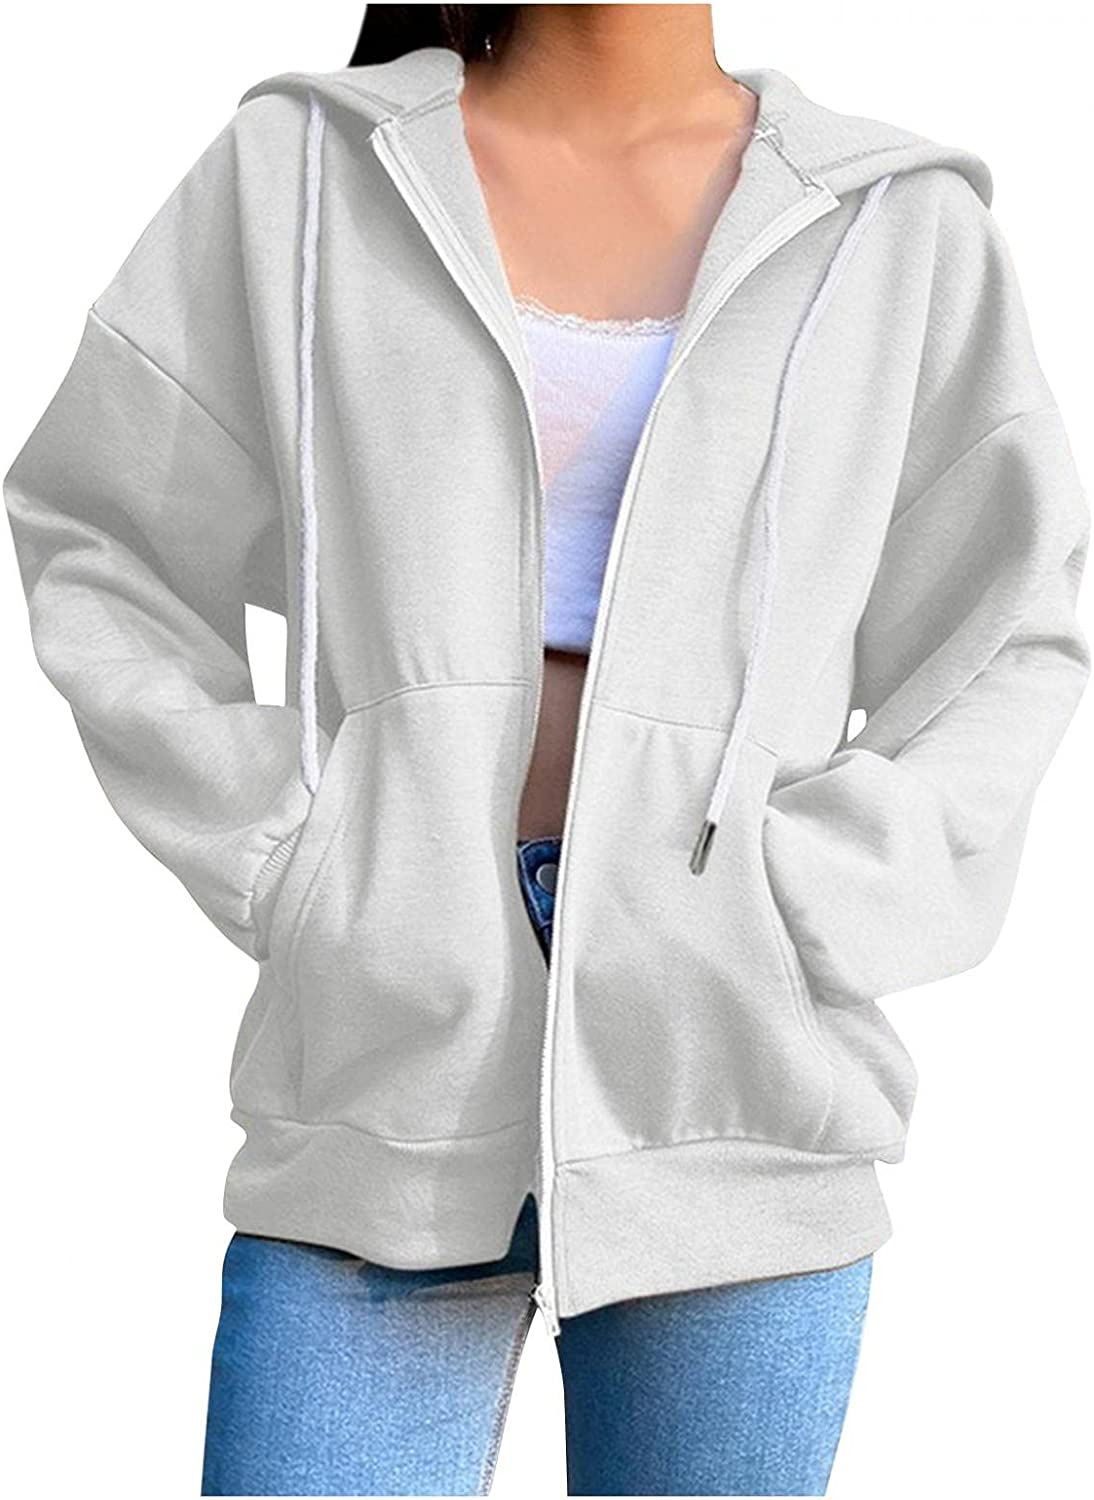 LEIYAN Womens Oversized Hooded Jackets Zip Up Long Sleeve Casual Motorcycle Bomber Coat Outerwear Streetwear with Pockets